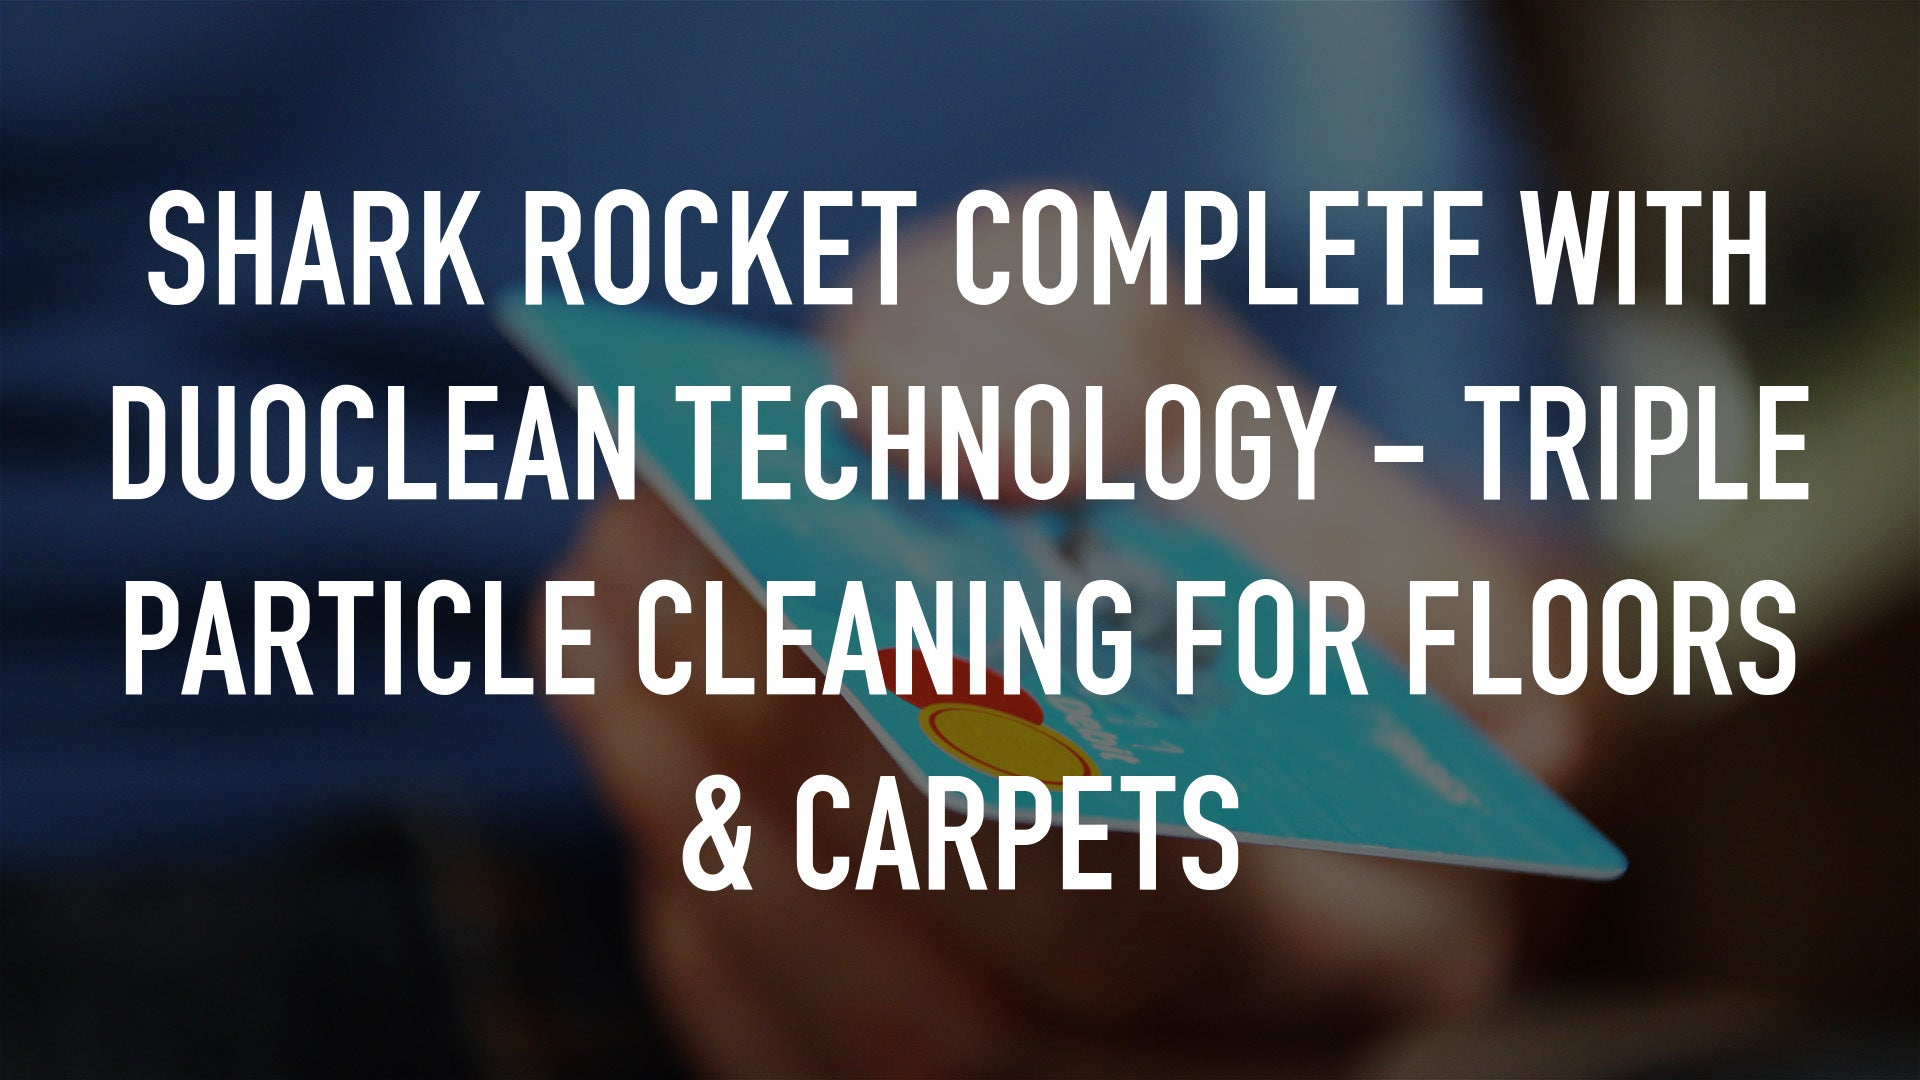 Shark Rocket Complete with DuoClean Technology - Triple Particle Cleaning For Floors & Carpets